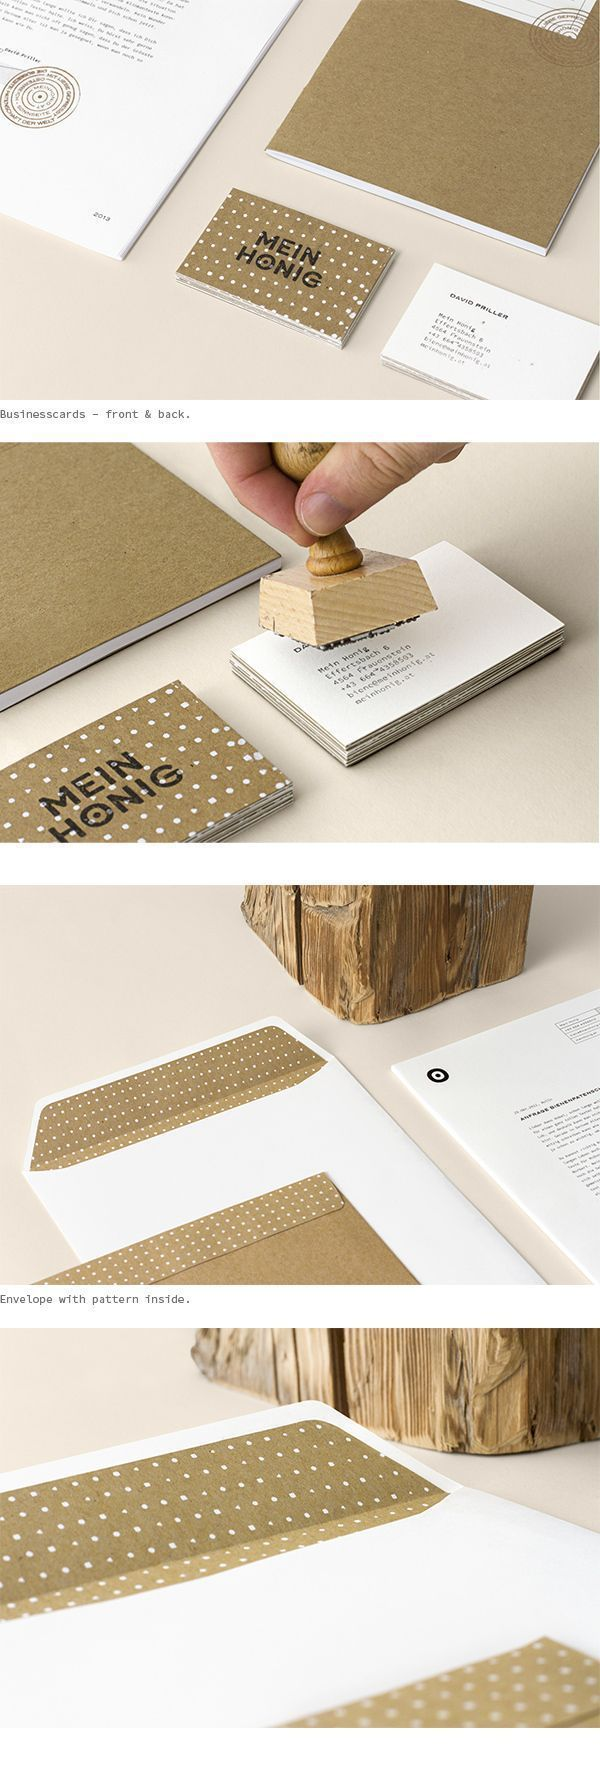 Brown Recycled business cards | Brand | Pinterest | Business cards ...